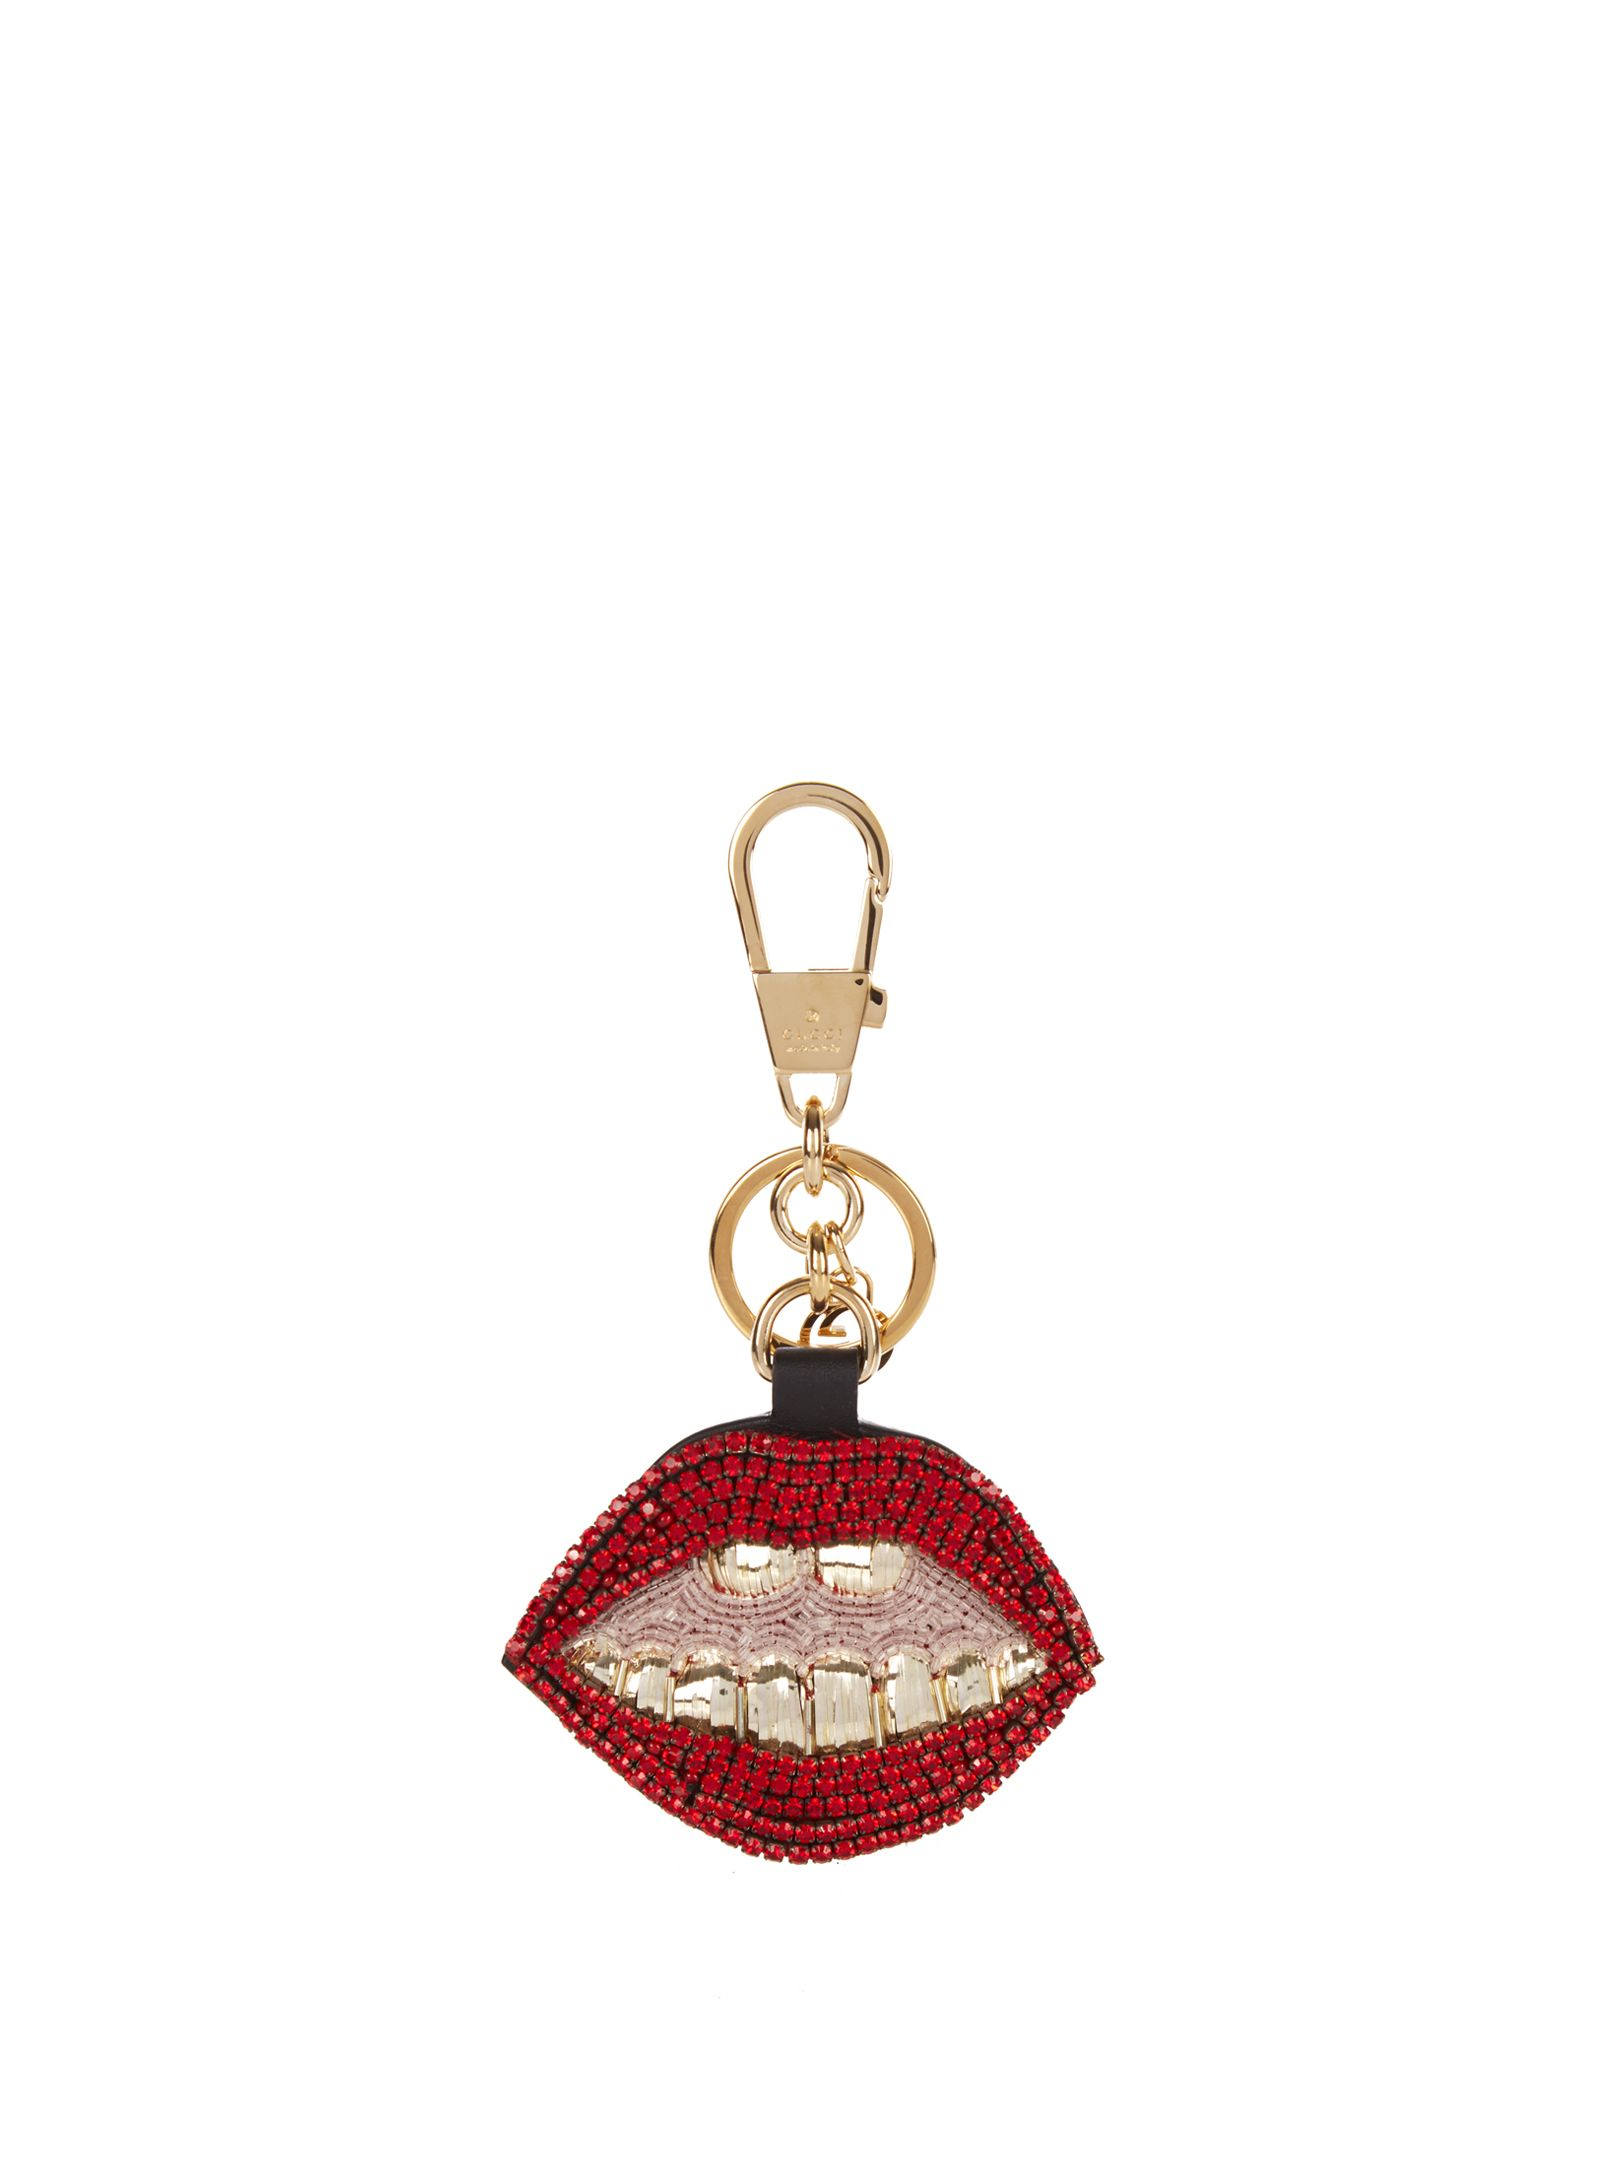 4311cc4d394 Gucci Mouth crystal-embellished key ring  550